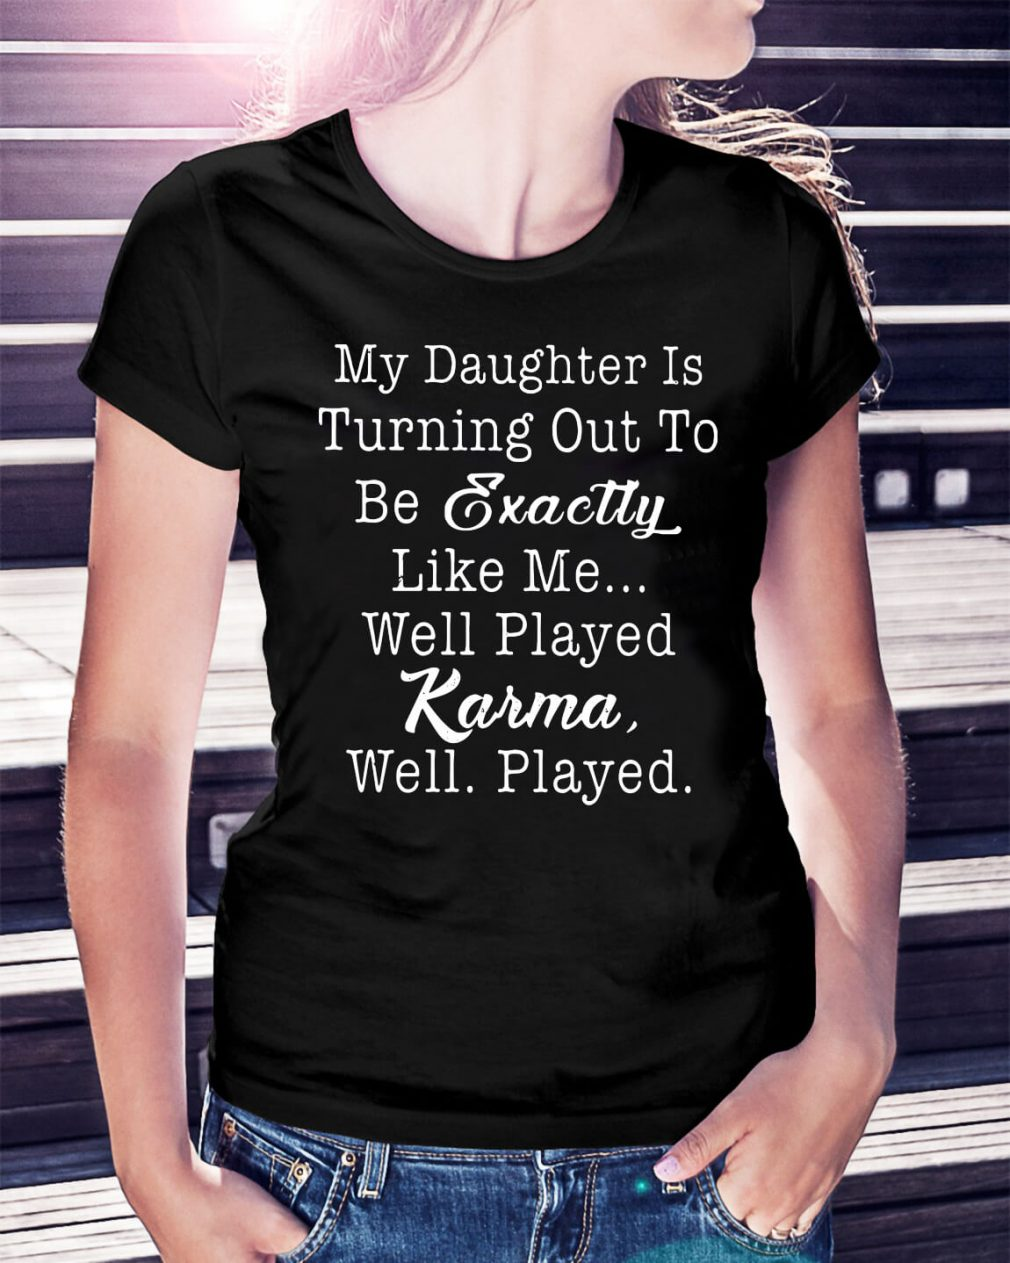 My daughter is turning out to be exactly like me shirt